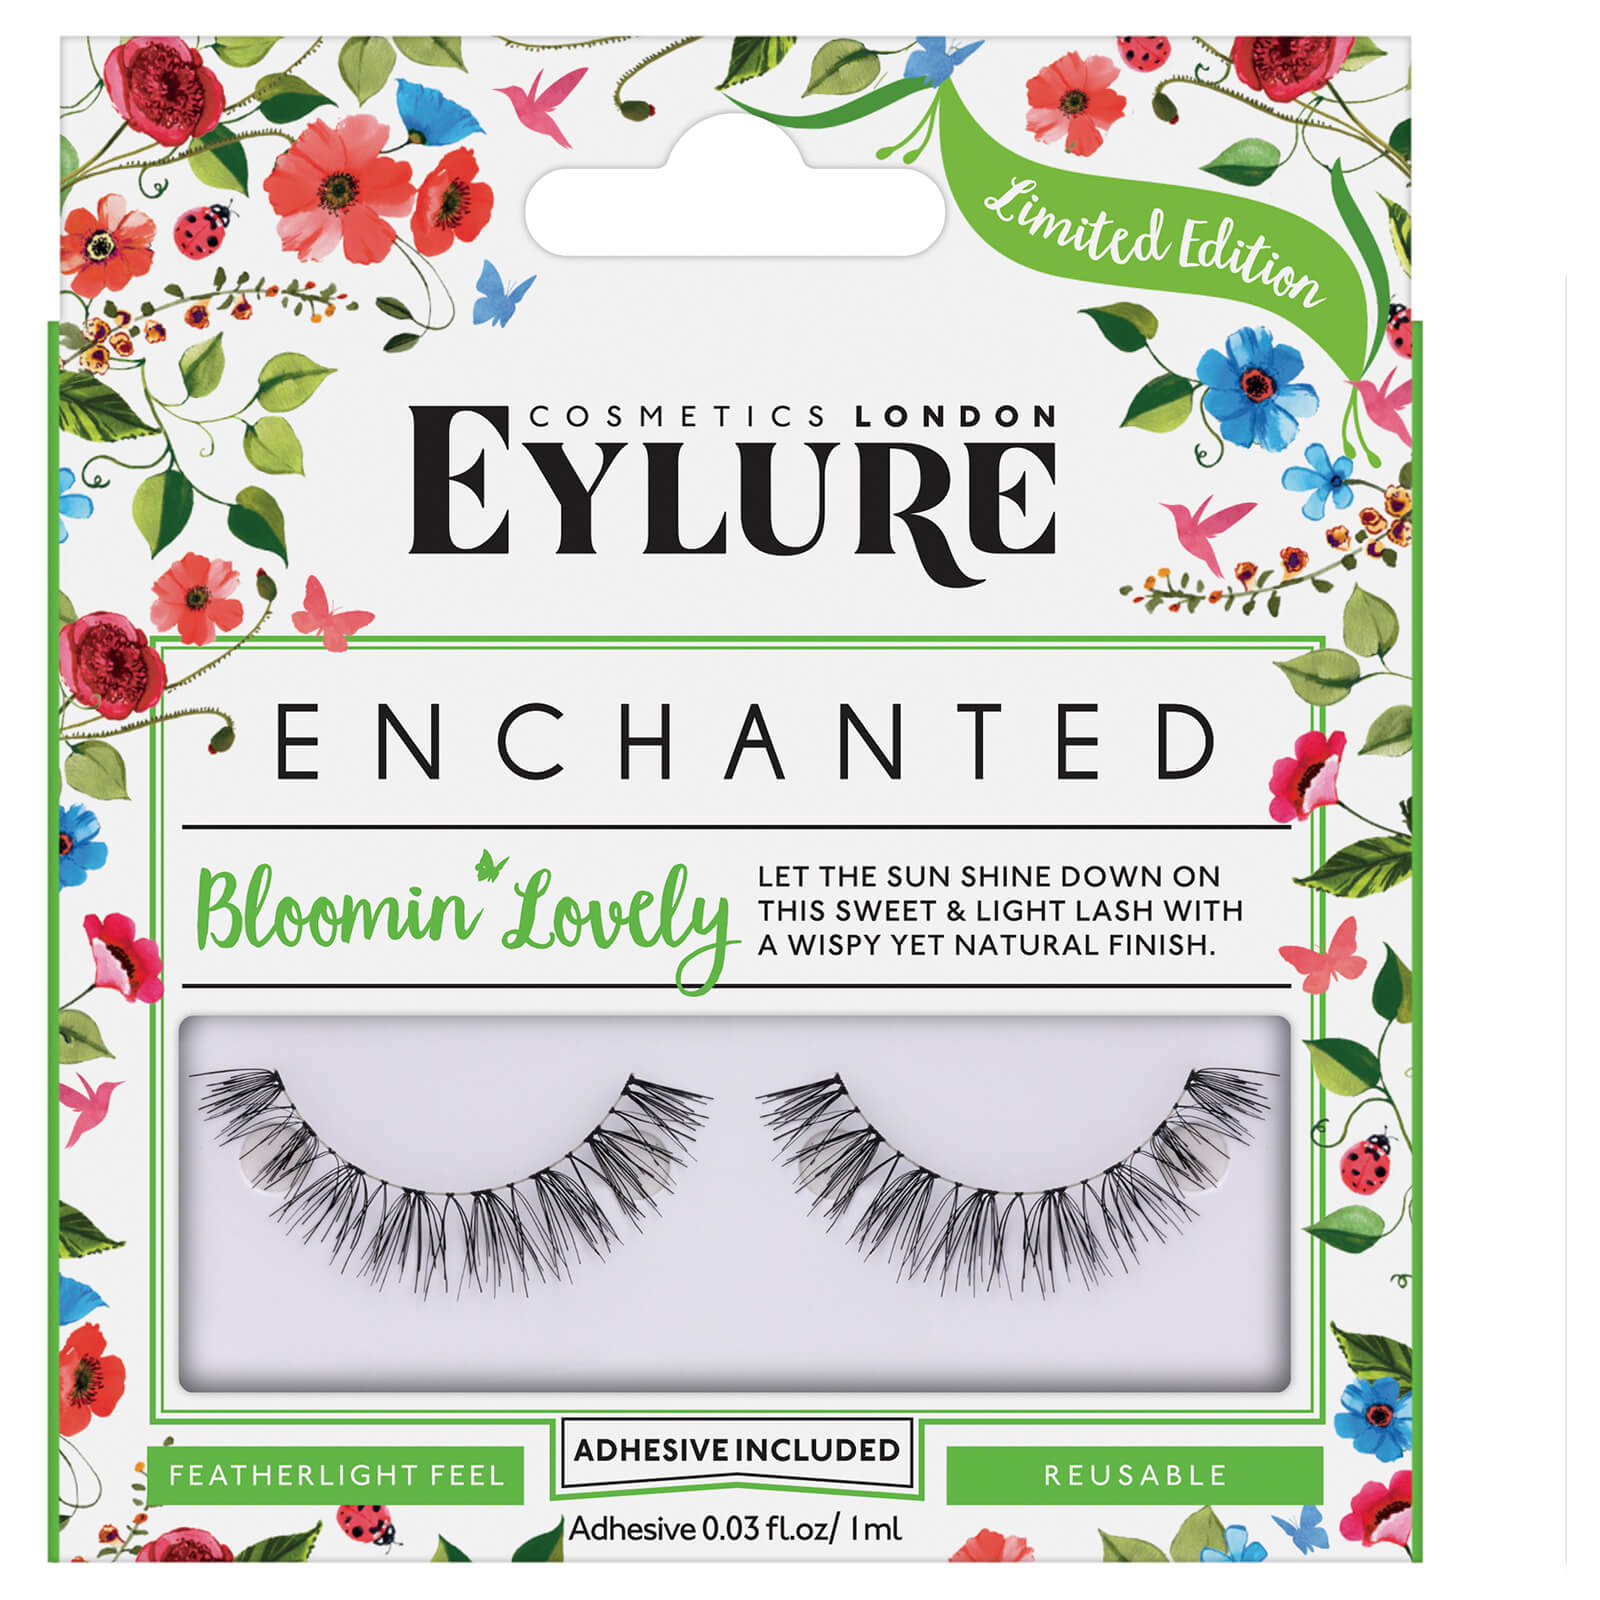 c1853b74e7b Eylure Enchanted Bloomin' Lovely Lashes - FREE Delivery